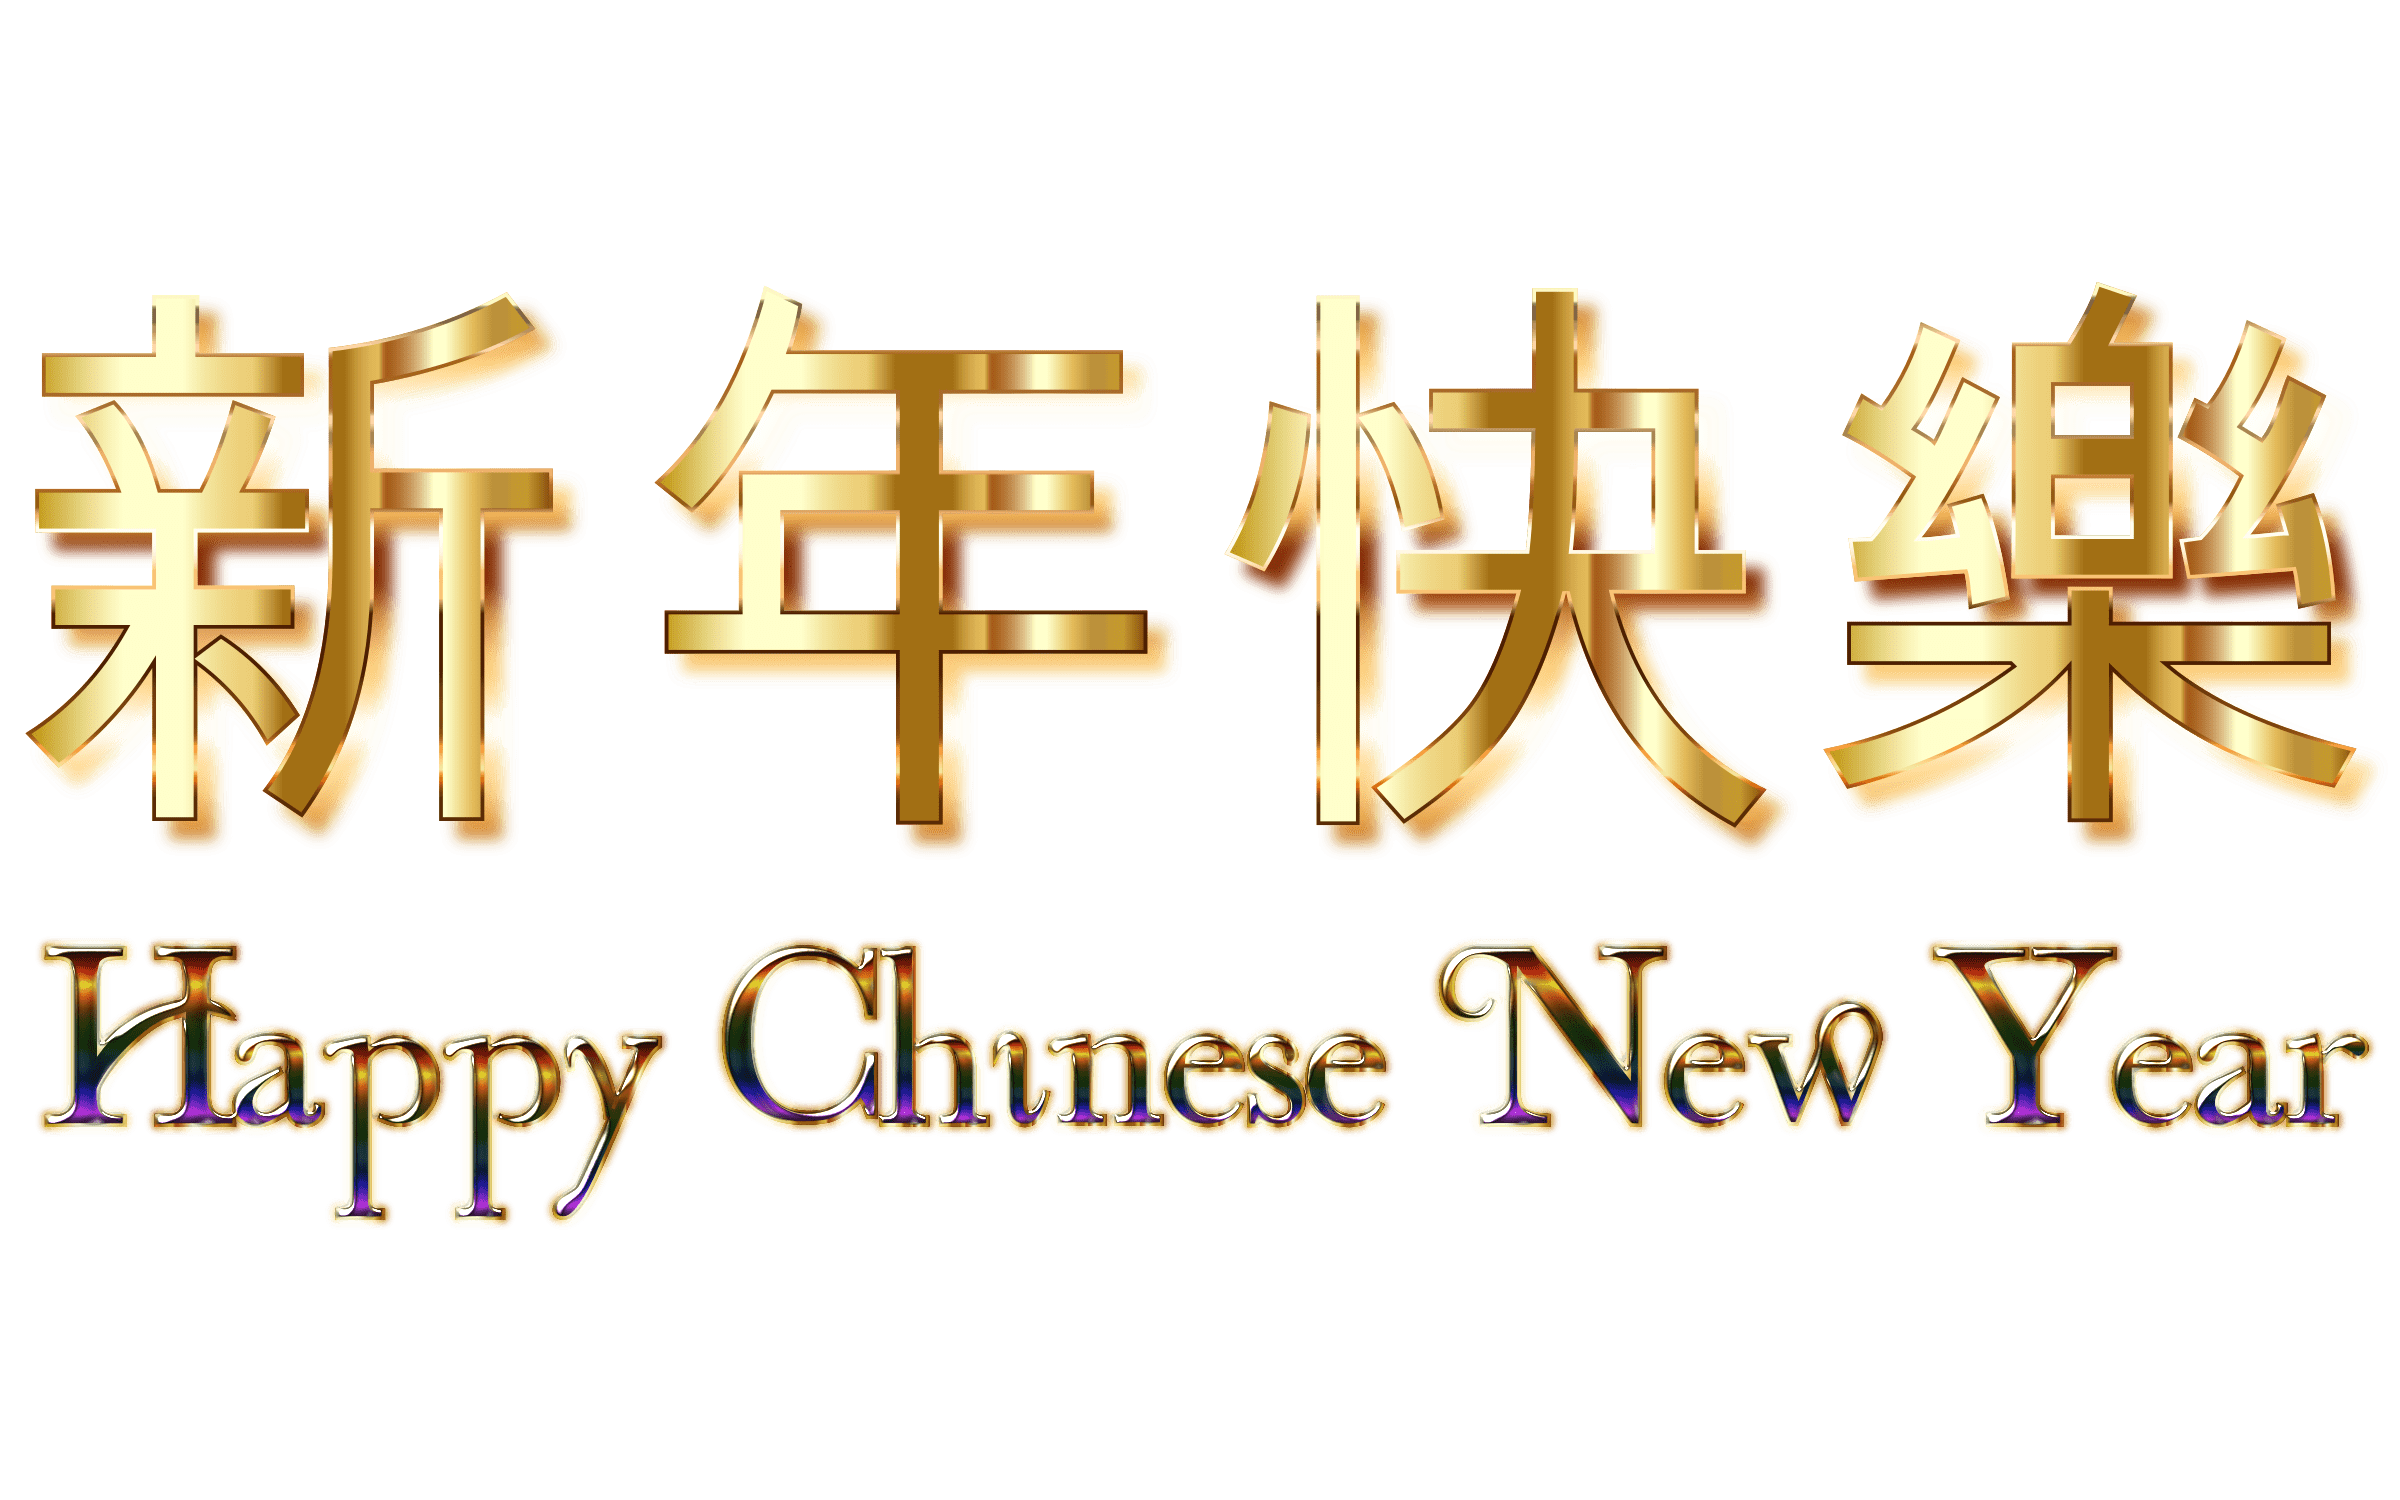 Happy chinese new year 2017 png. Transparent stickpng